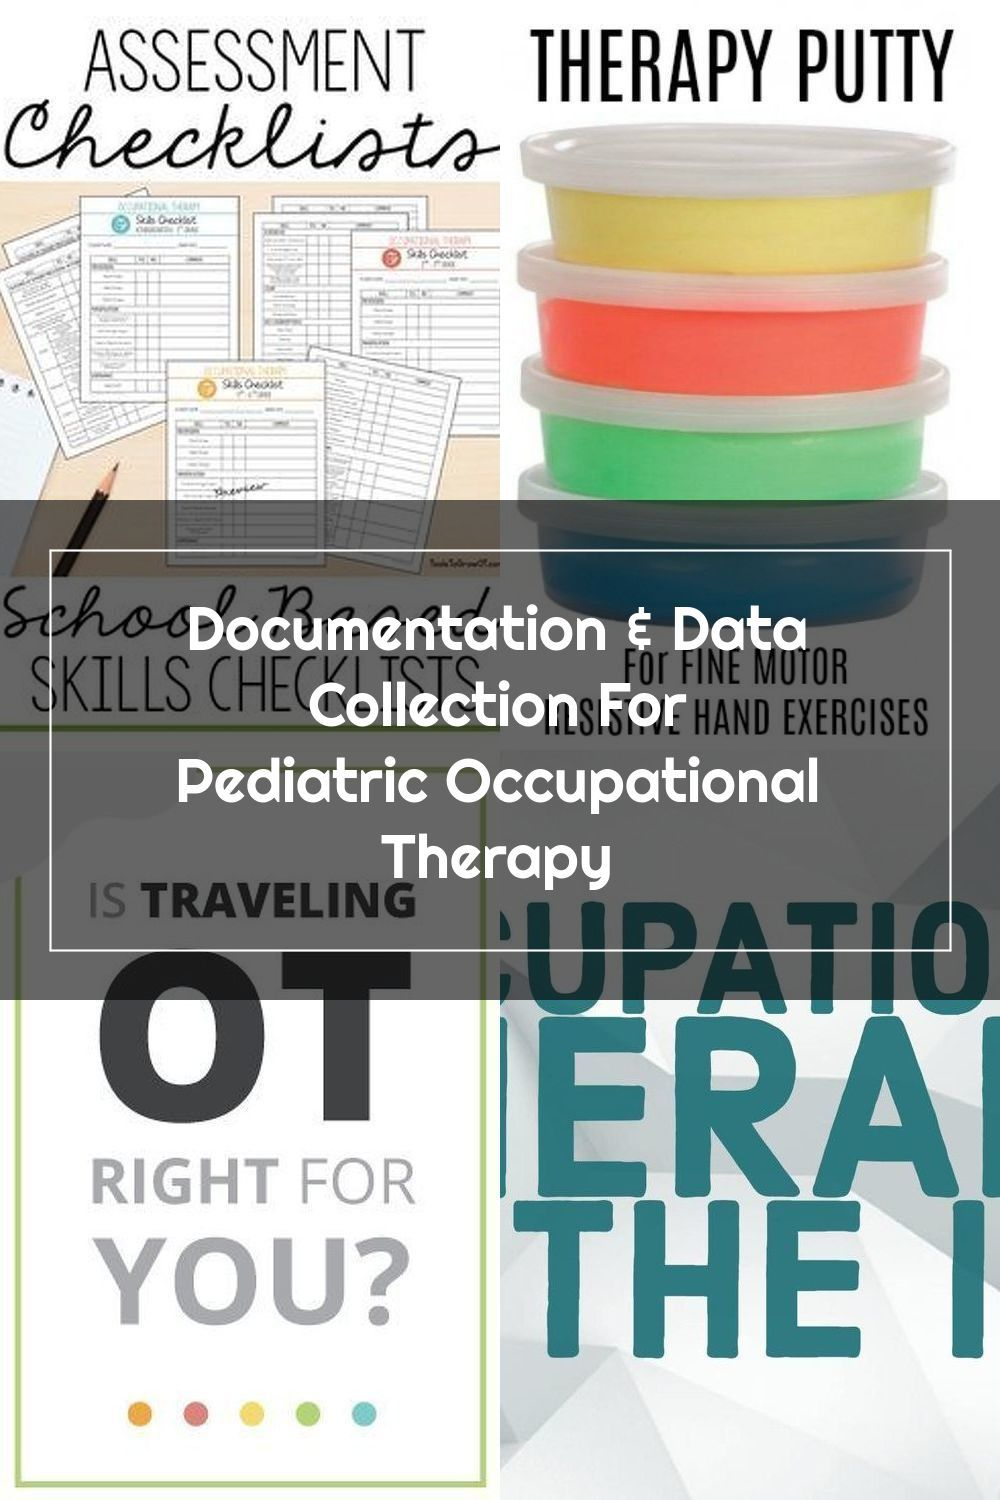 Occupational therapy school based skills checklist in 2020